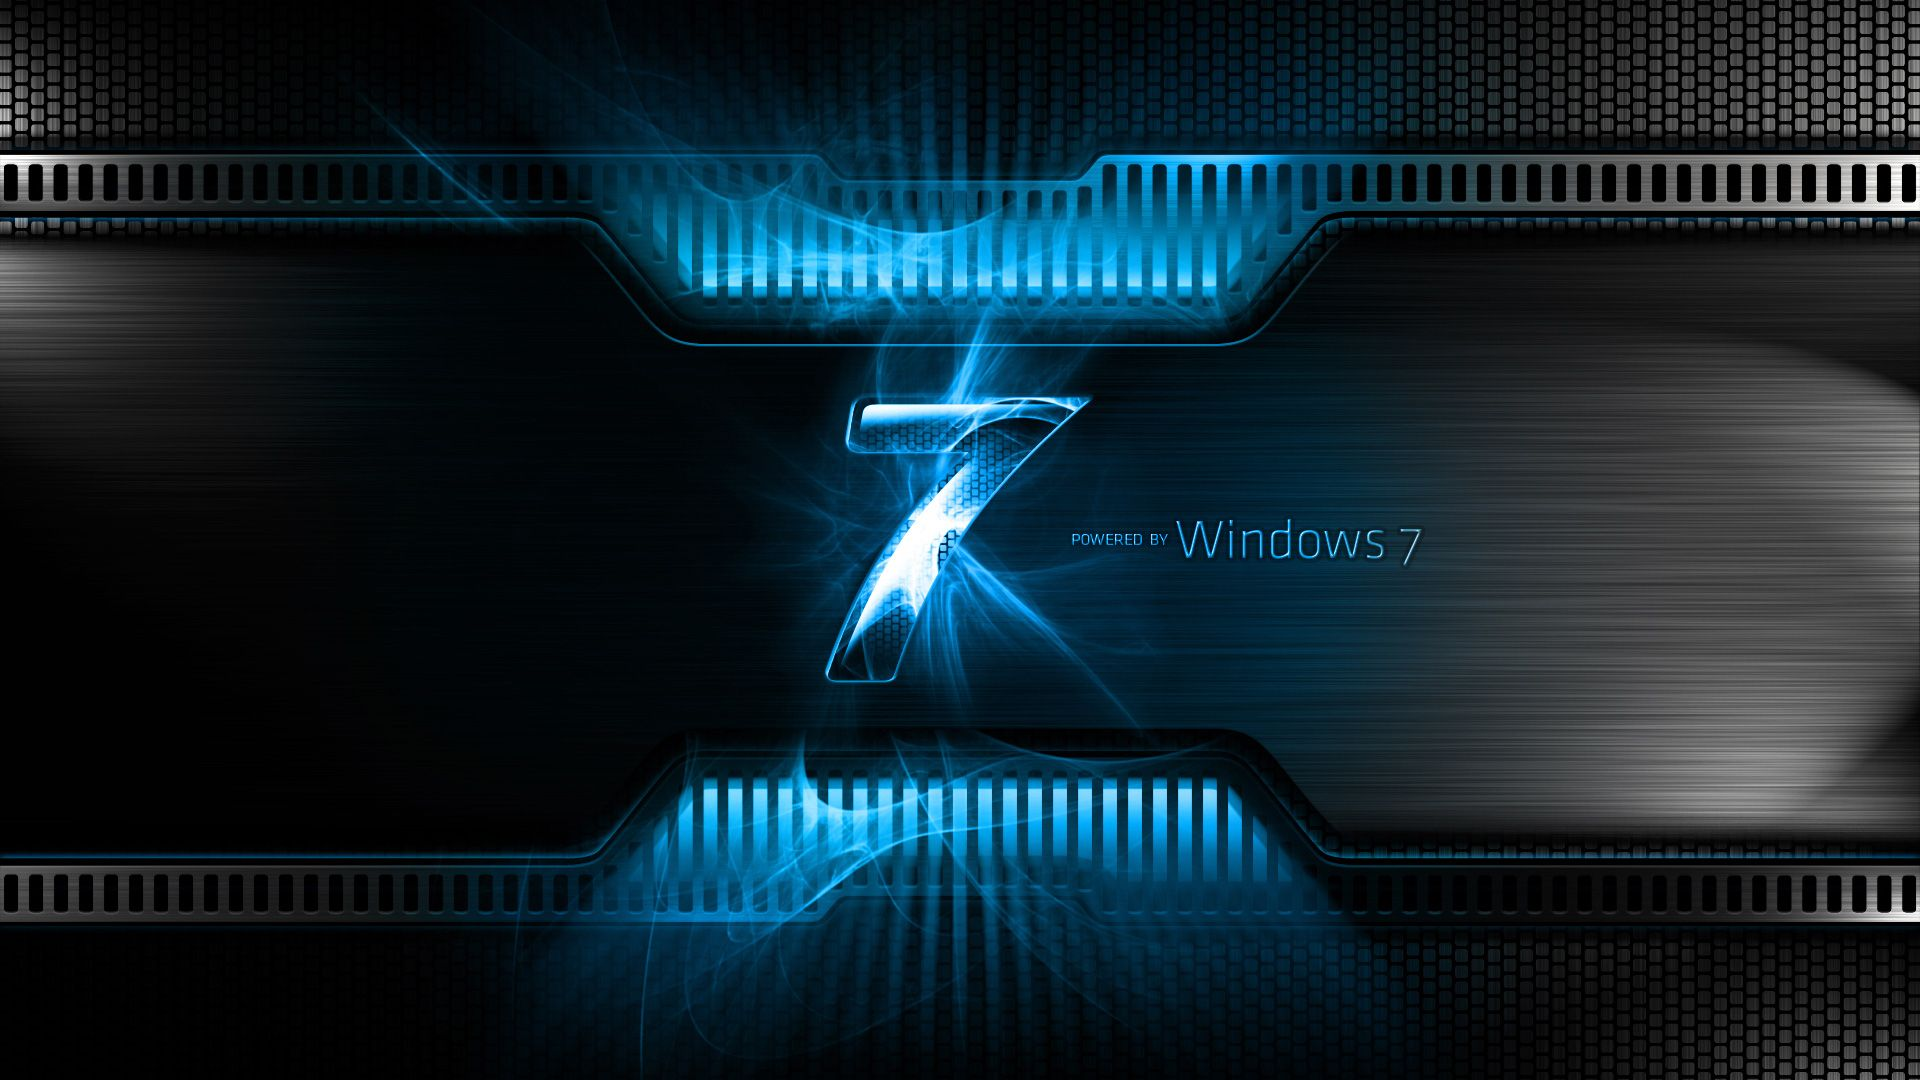 Wallpaper Windows 7 Get All Of High Quality Desktop Wallpapers Technology Wallpaper Windows Wallpaper Hi Tech Wallpaper